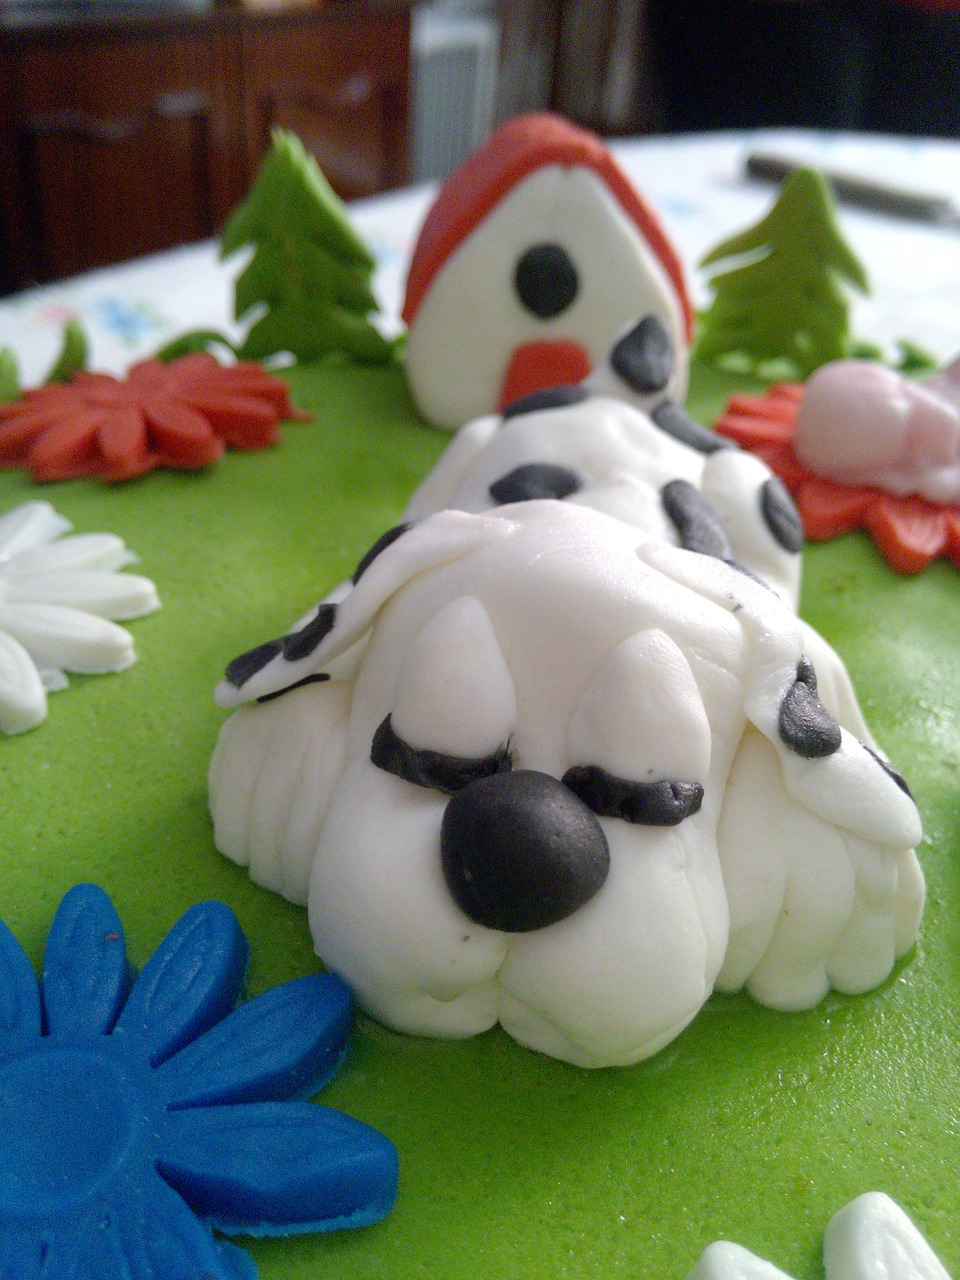 a cake topped with dog-shaped fondant